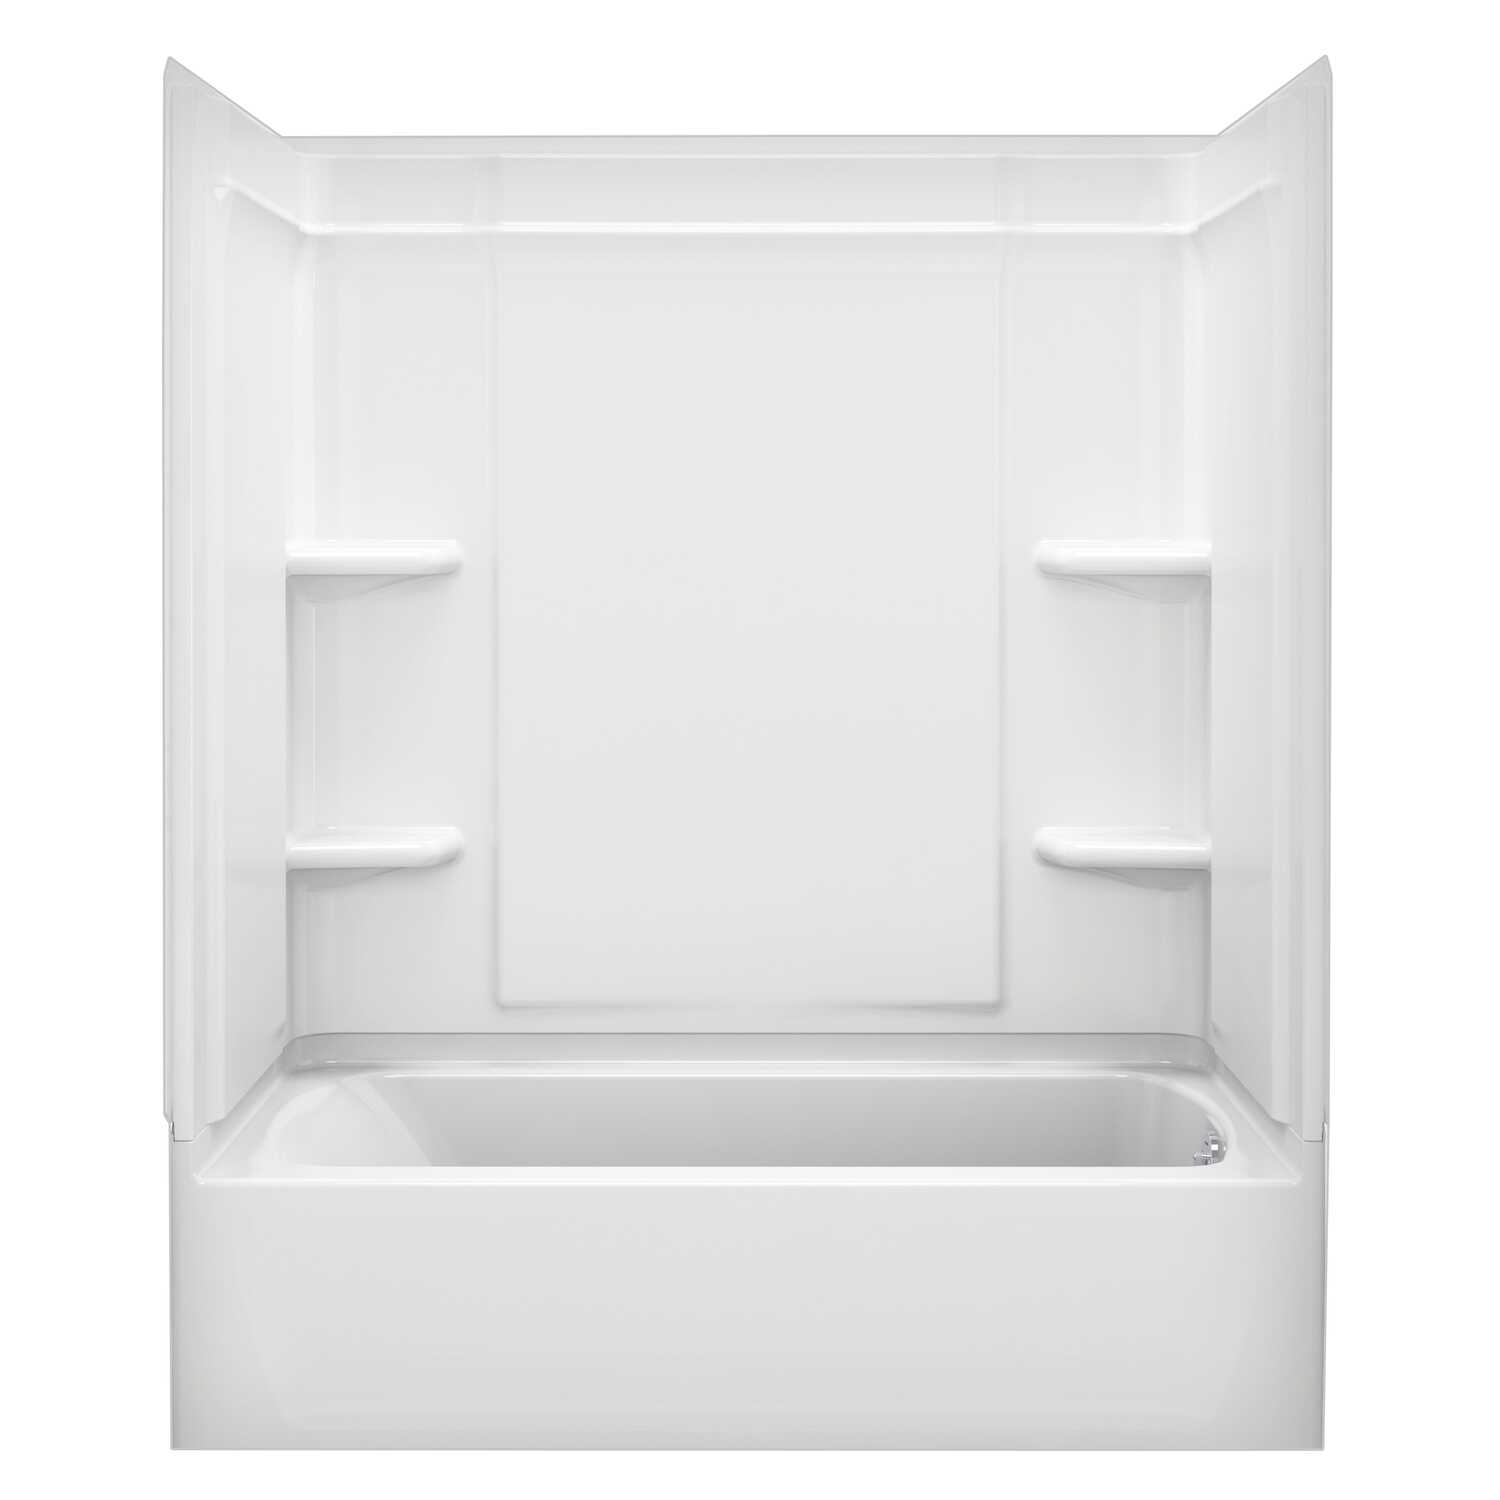 Sterling  Ensemble  White  Bathtub Wall Surround  Three Piece  Reversible  Rectangular